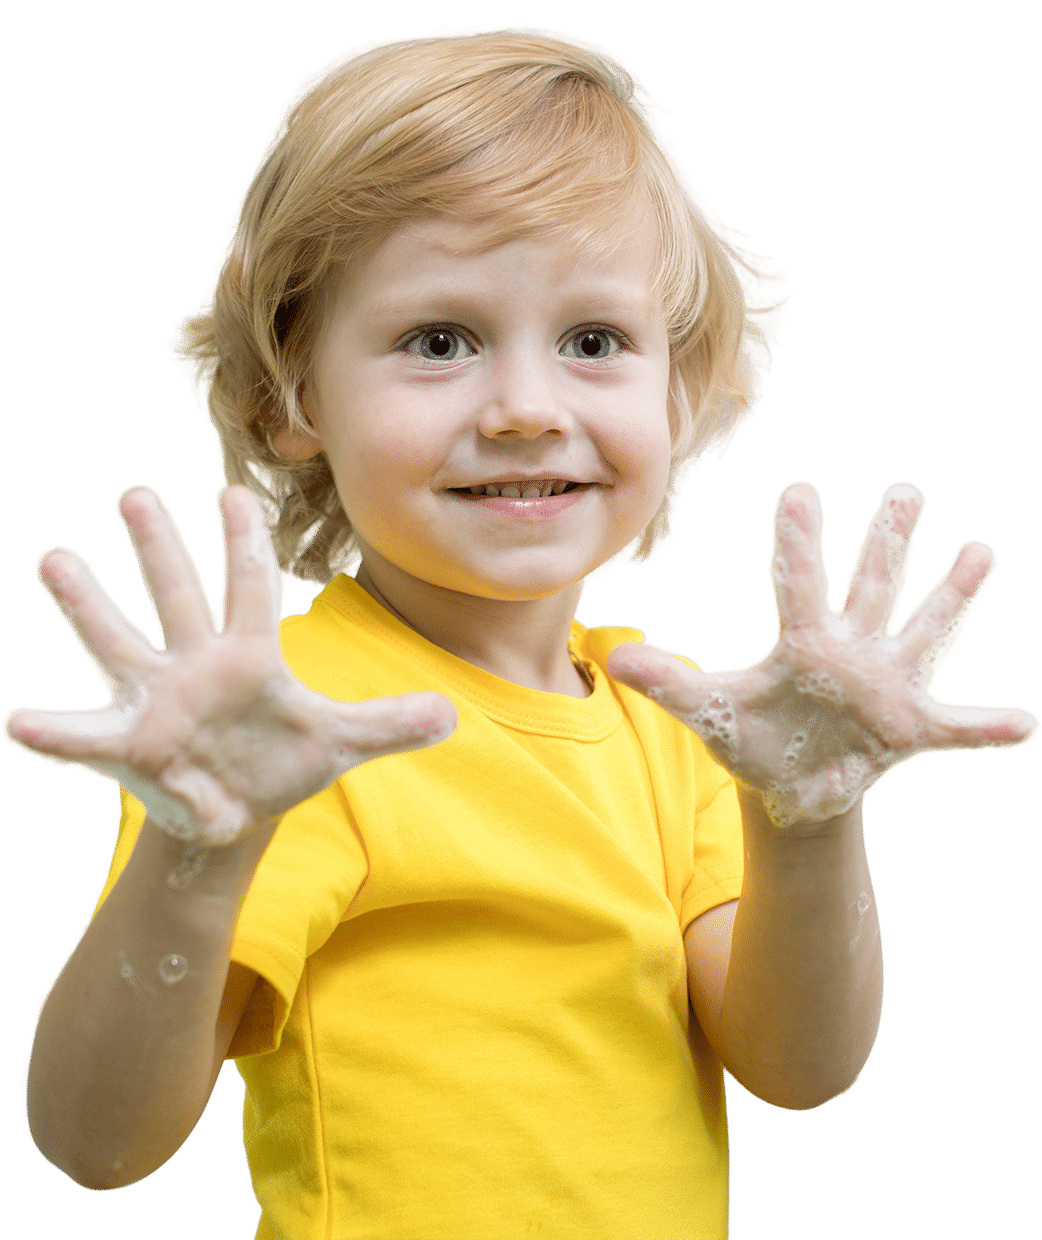 Kid hand washing at drop-in childcare center serving Washington and Texas